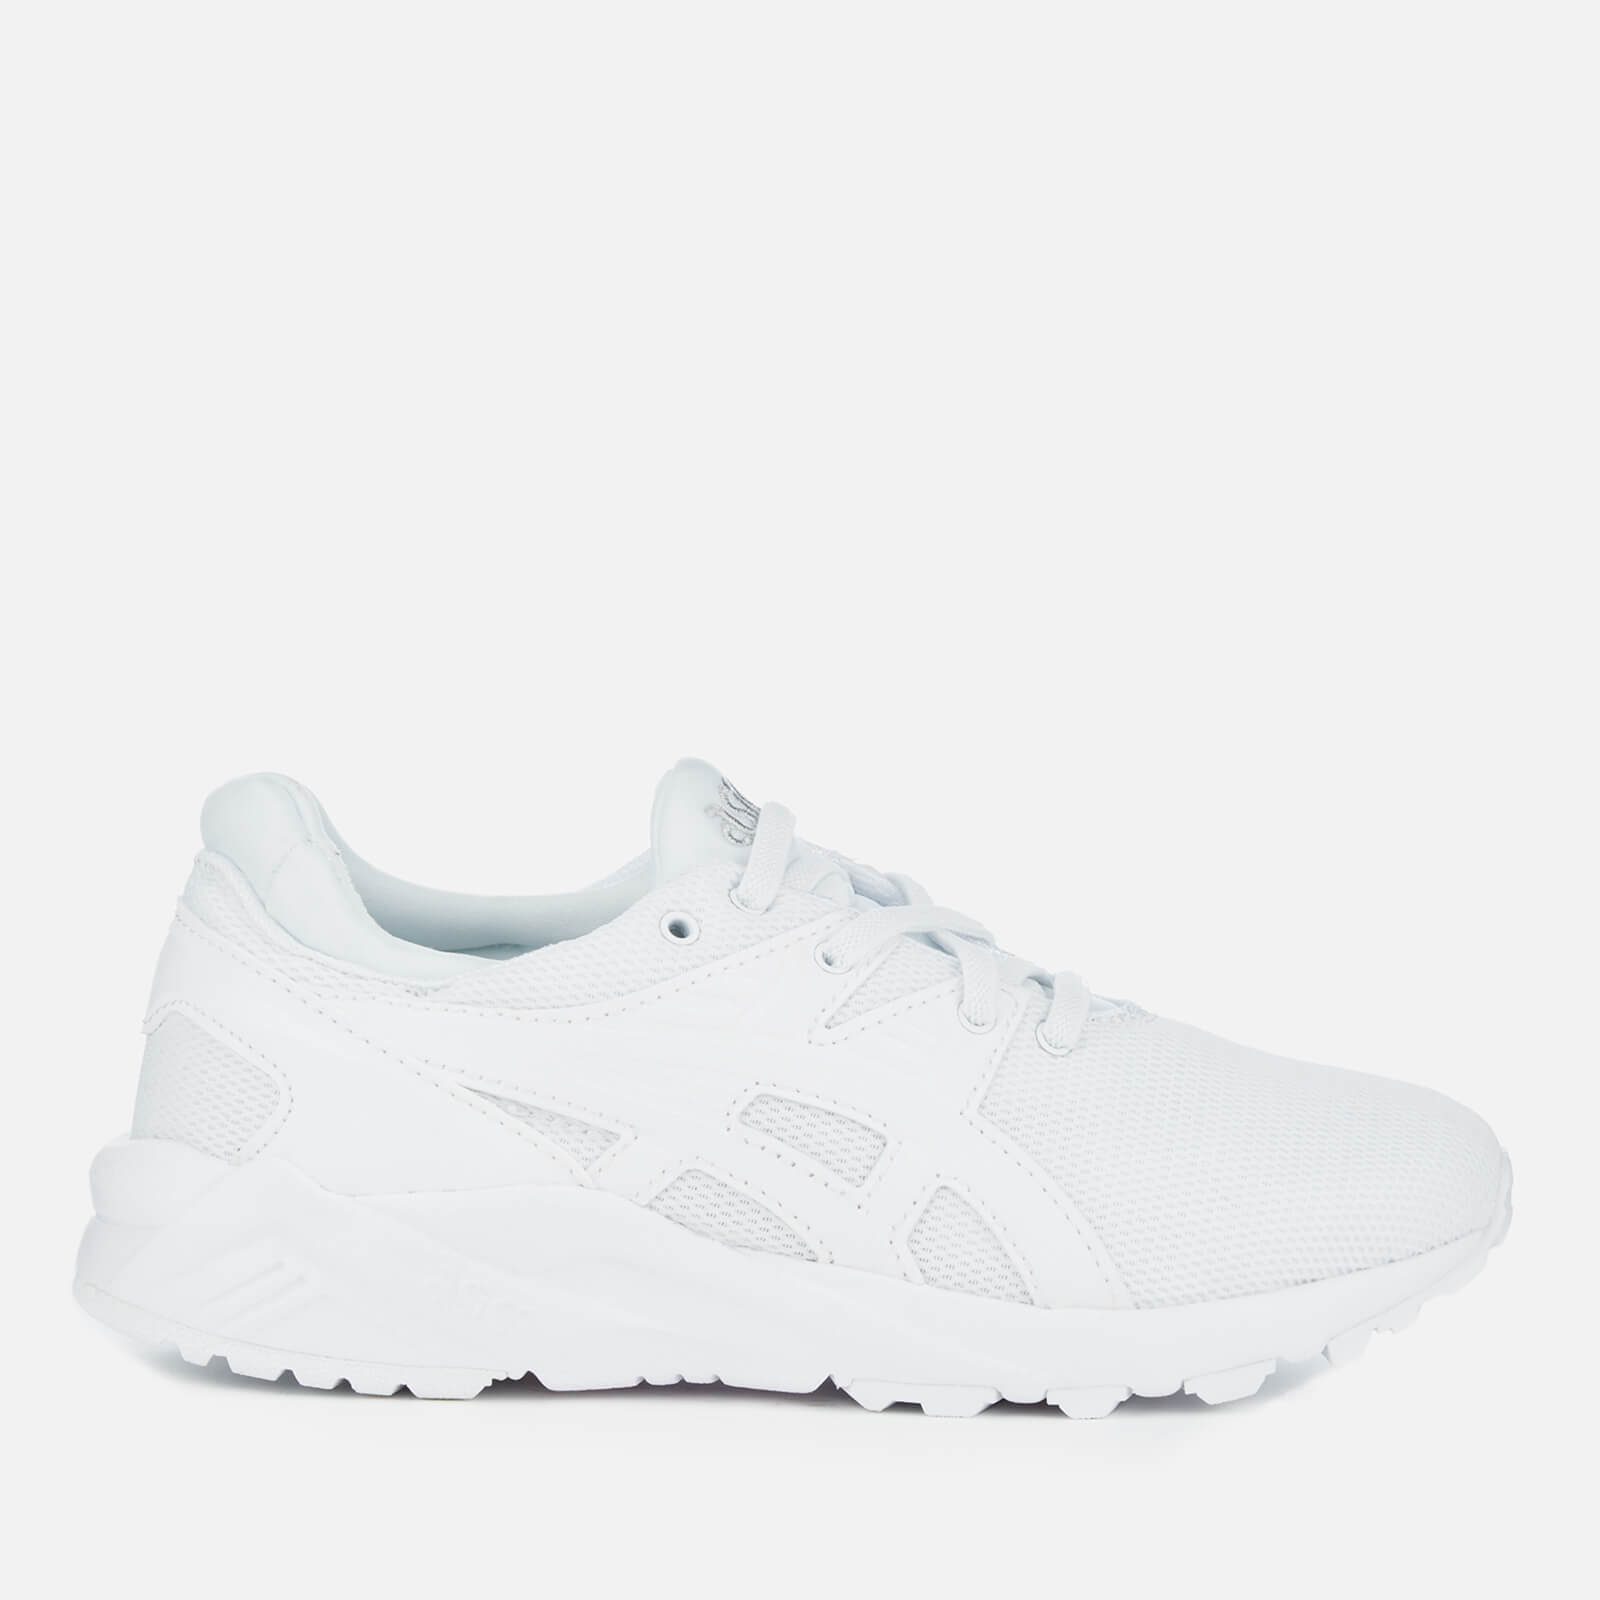 low priced 5761c 56fca Asics Kids' Gel-Kayano Evo Trainers - White/White